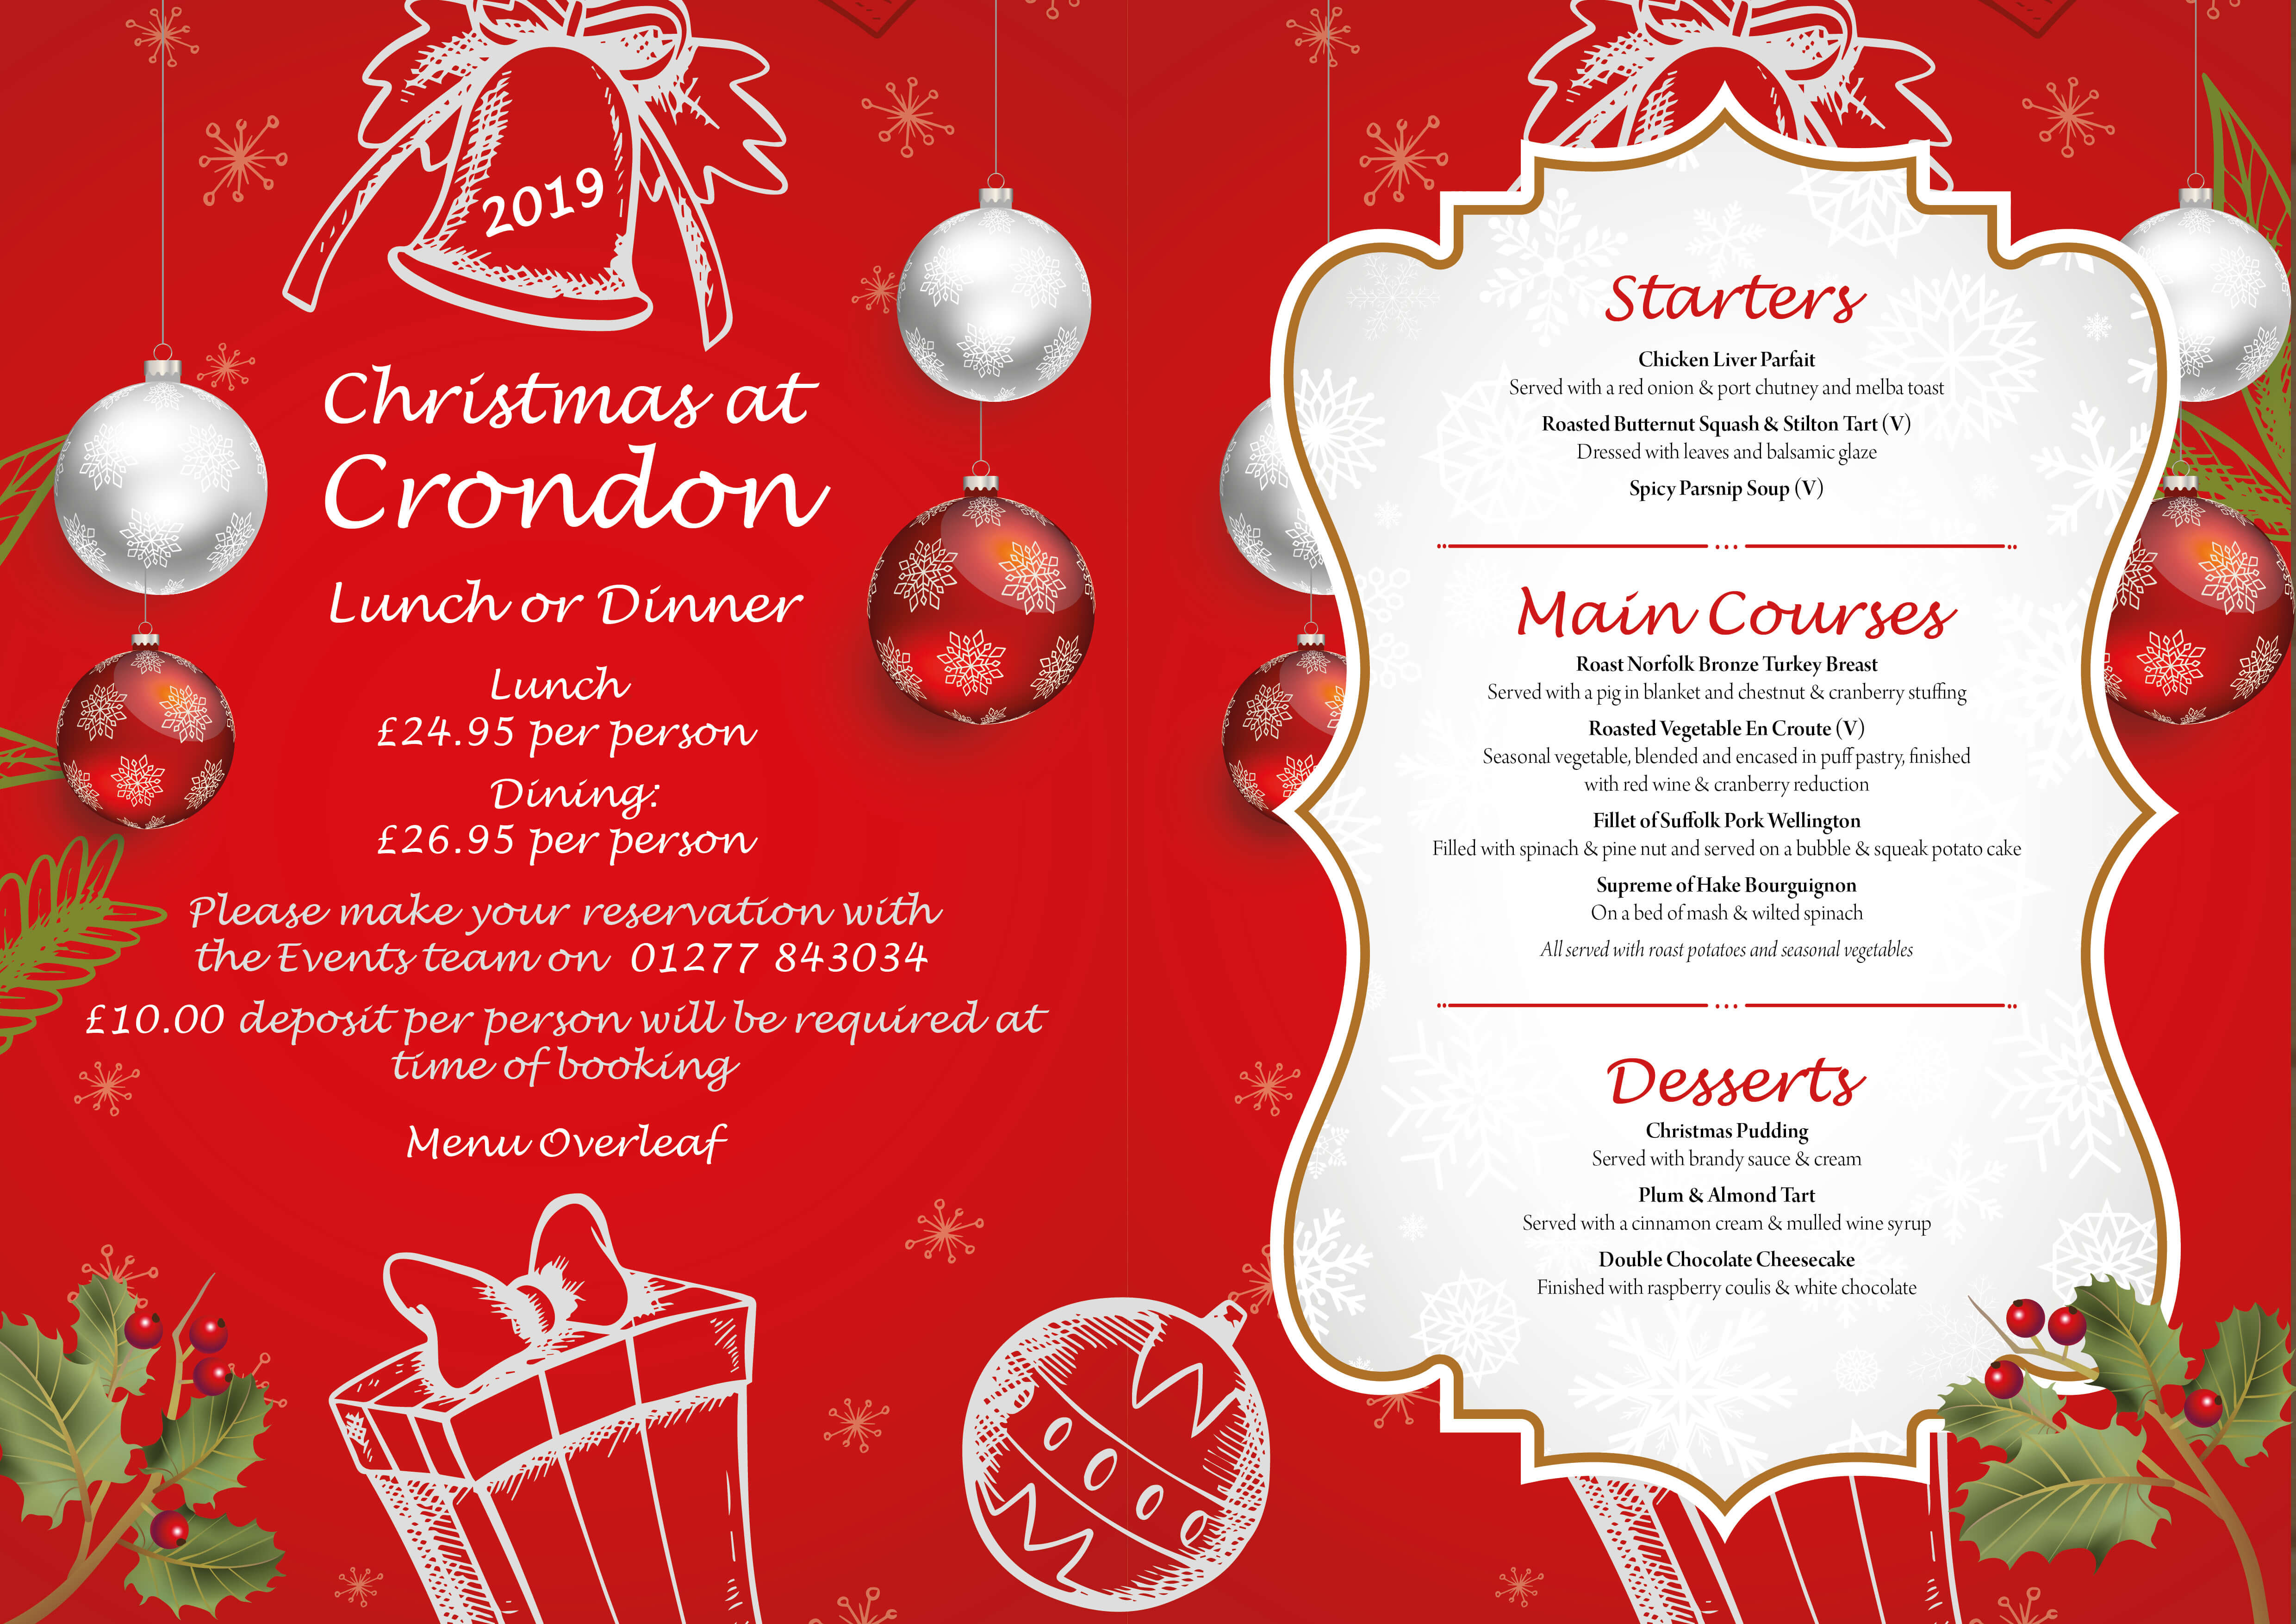 Crondon-park-christmas-Menu-2019